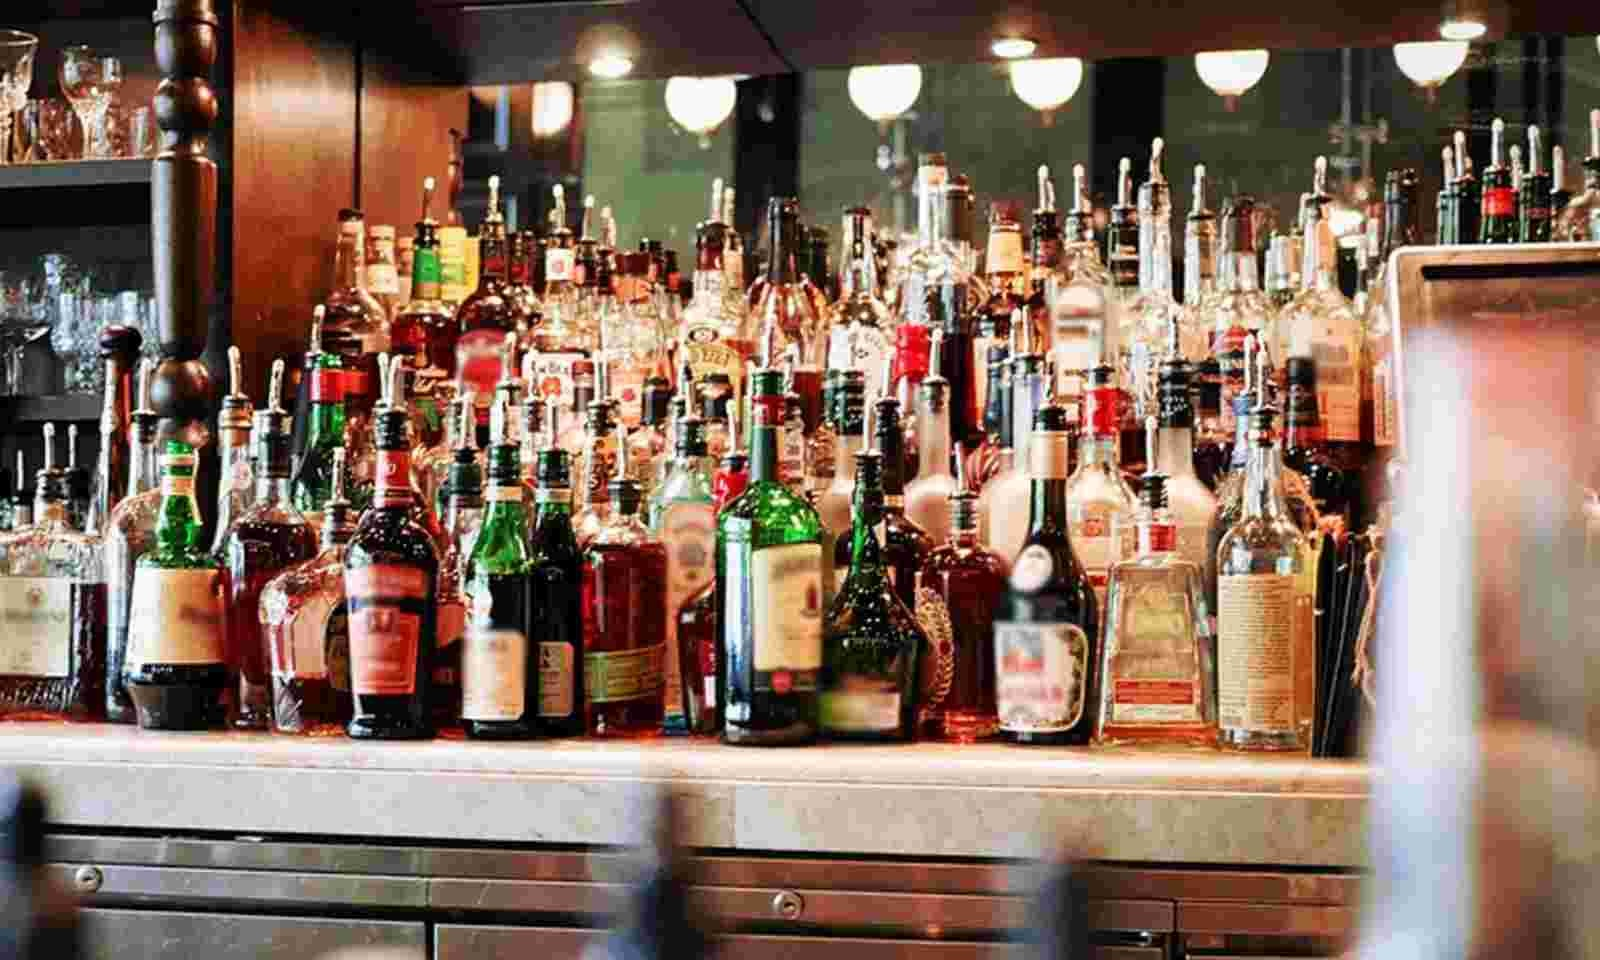 Delhi lowers legal age of drinking to 21, to close all government-run liquor shops